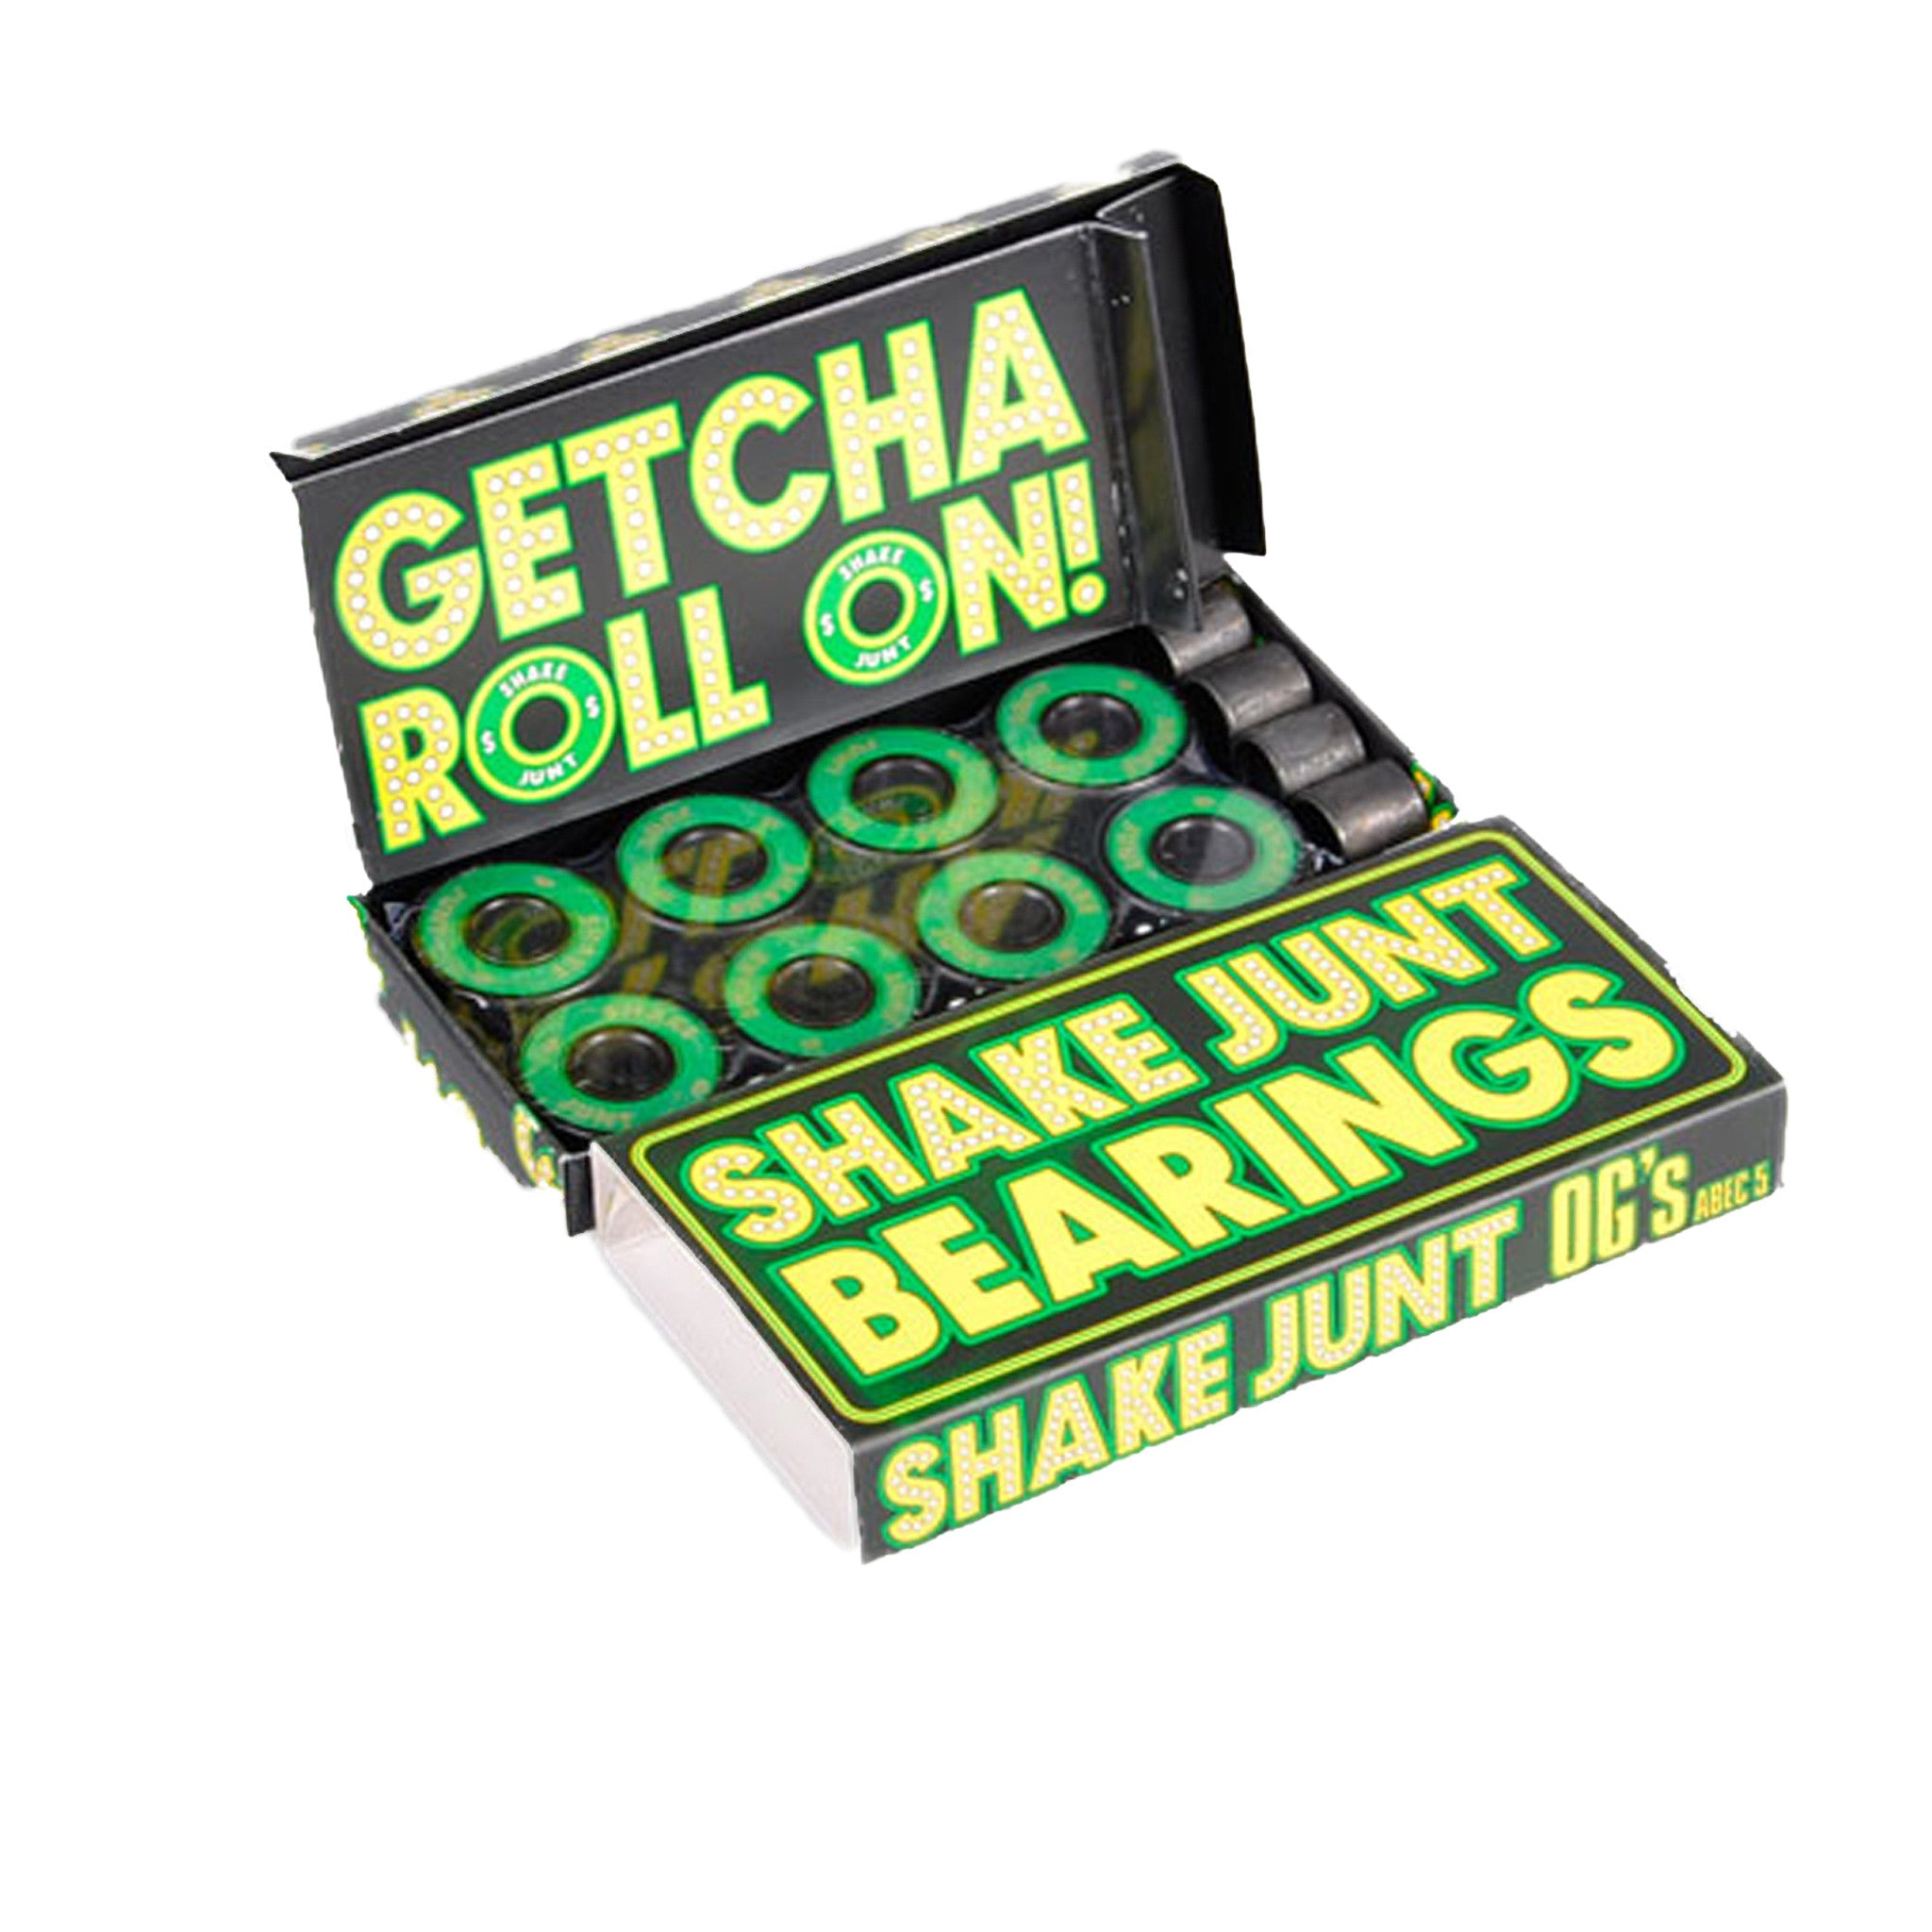 Bearings OG's abec 5 - Stoked Boardshop